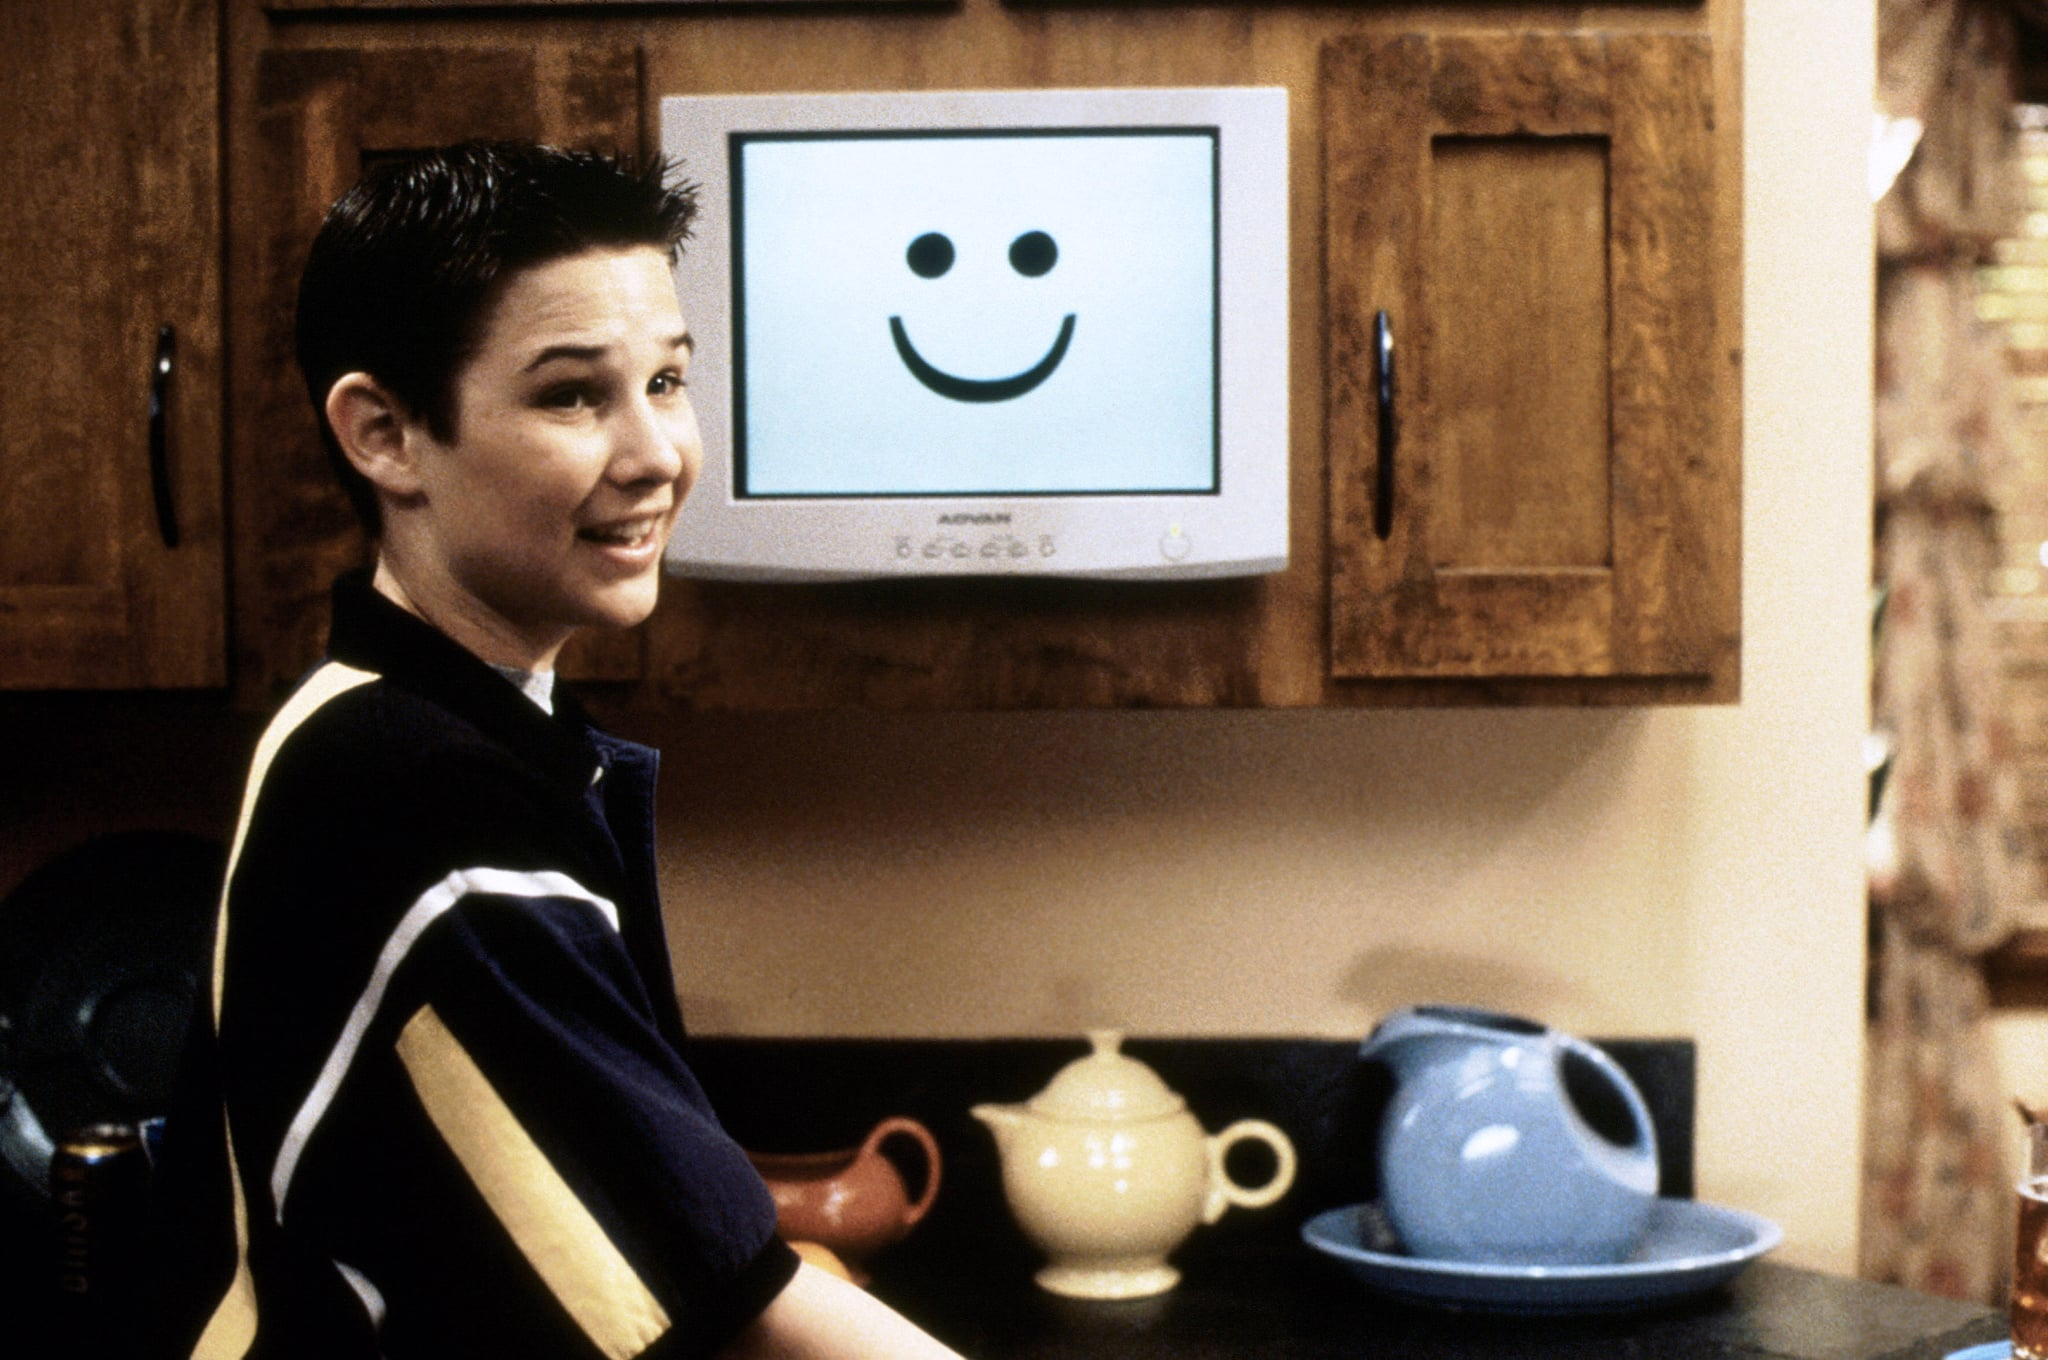 SMART HOUSE, Ryan Merriman, 1999.  Disney Channel  / Courtesy: Everett Collection